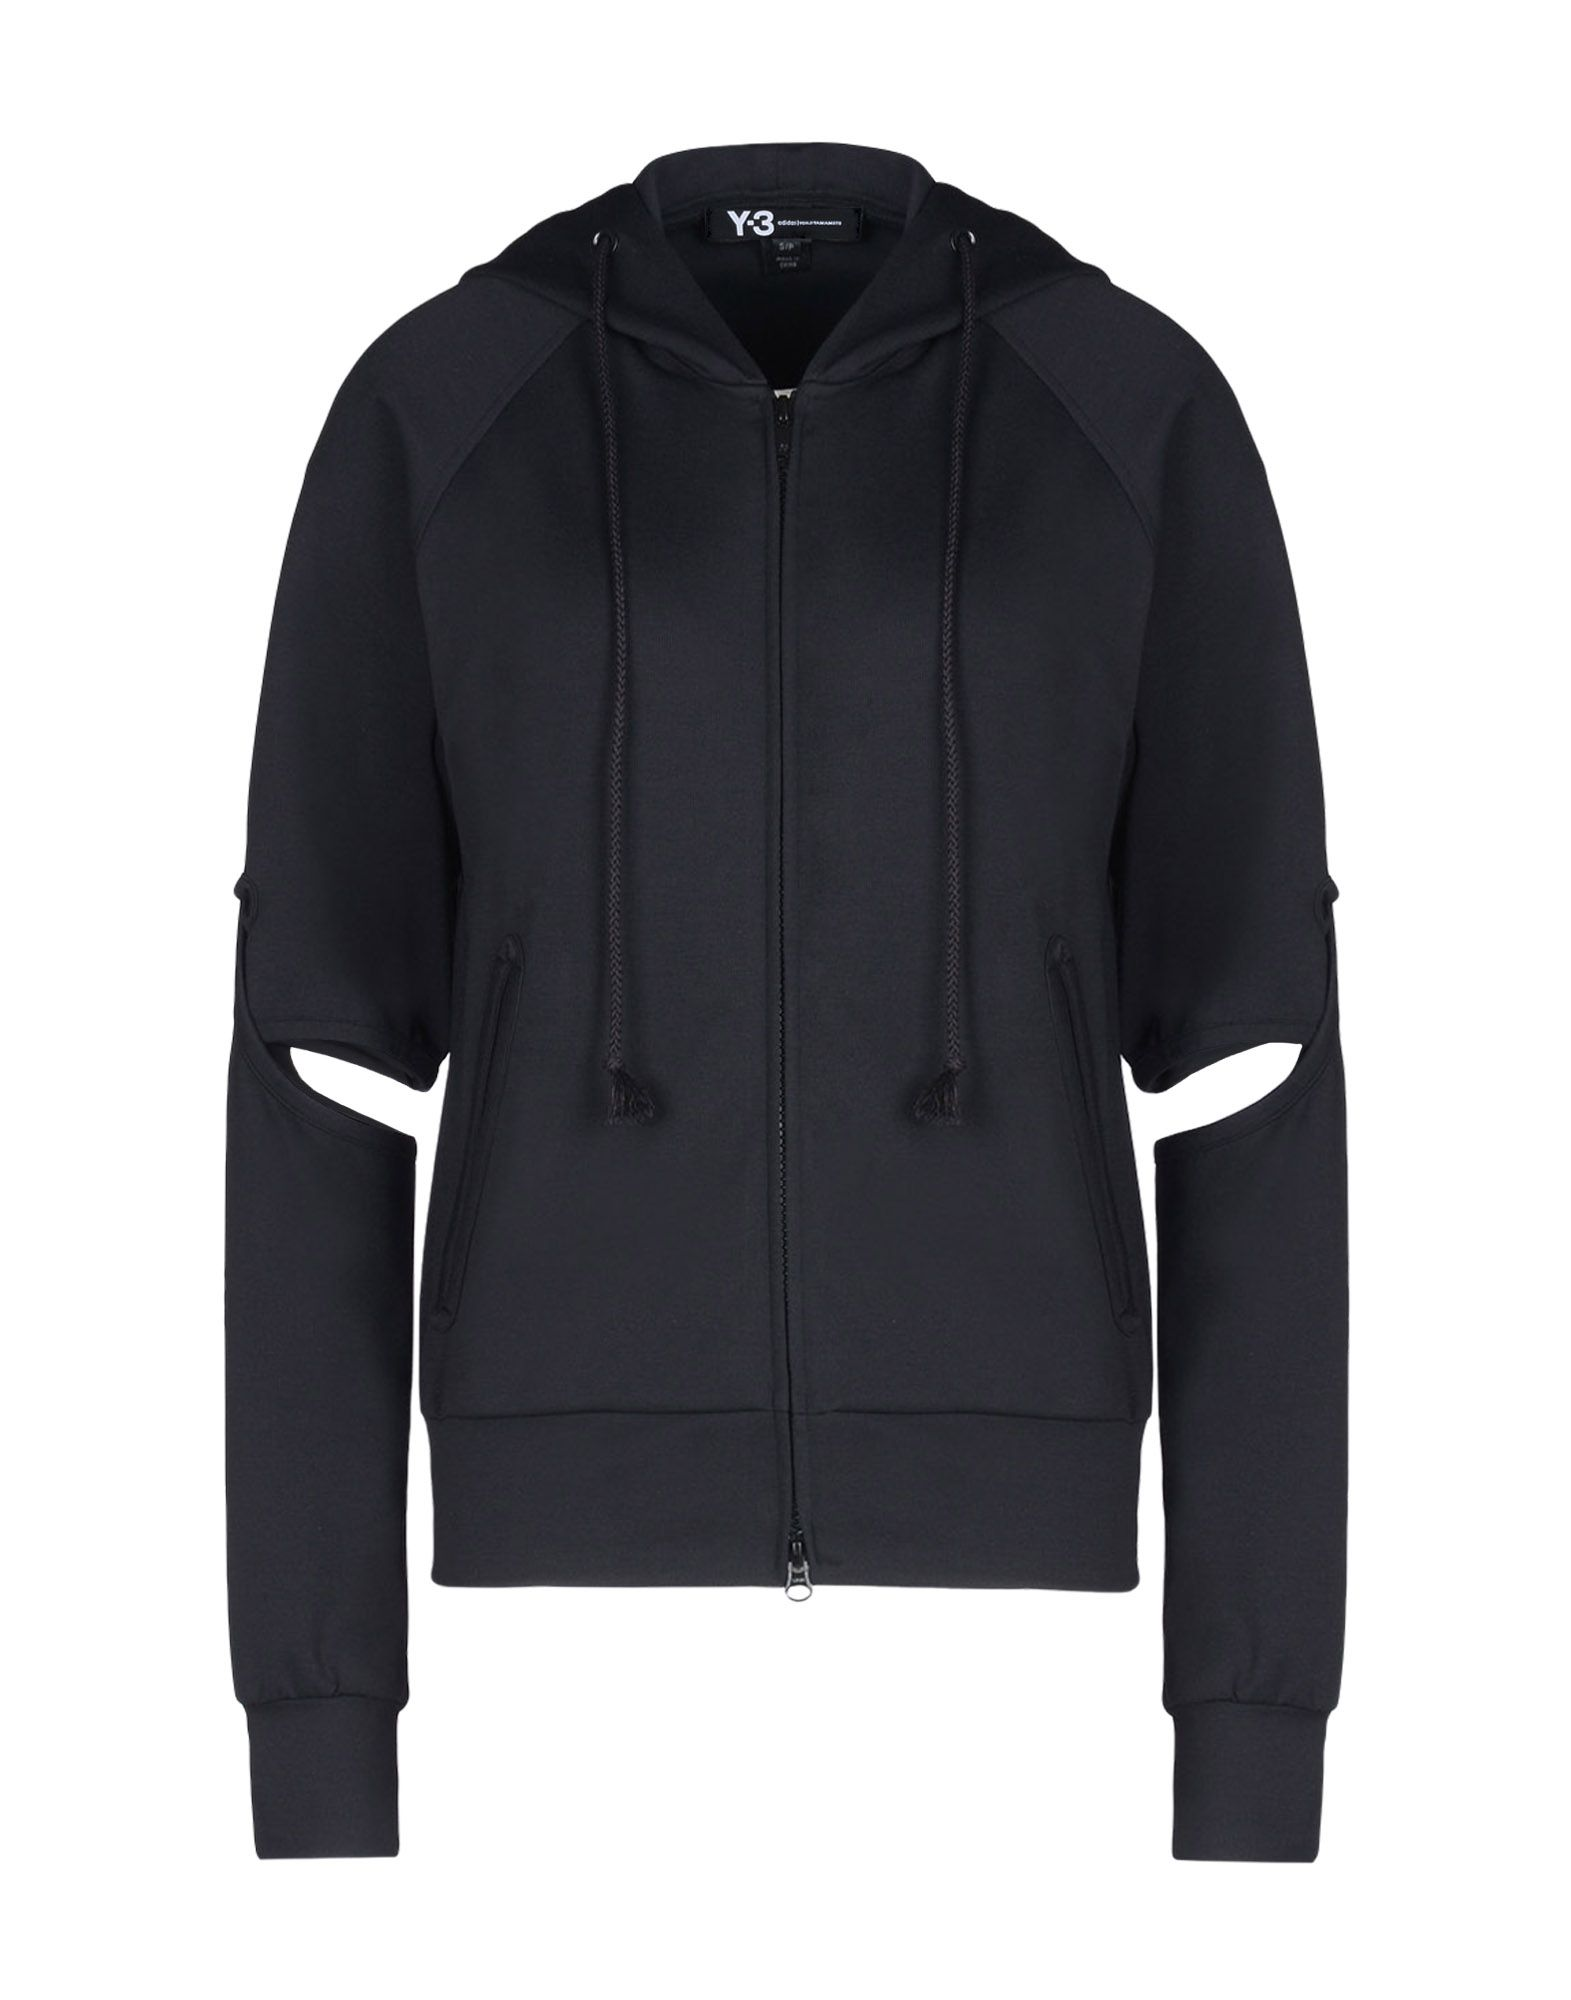 Y 3 LUX JACKET Hooded Sweatshirts for Women | Adidas Y-3 Official ...